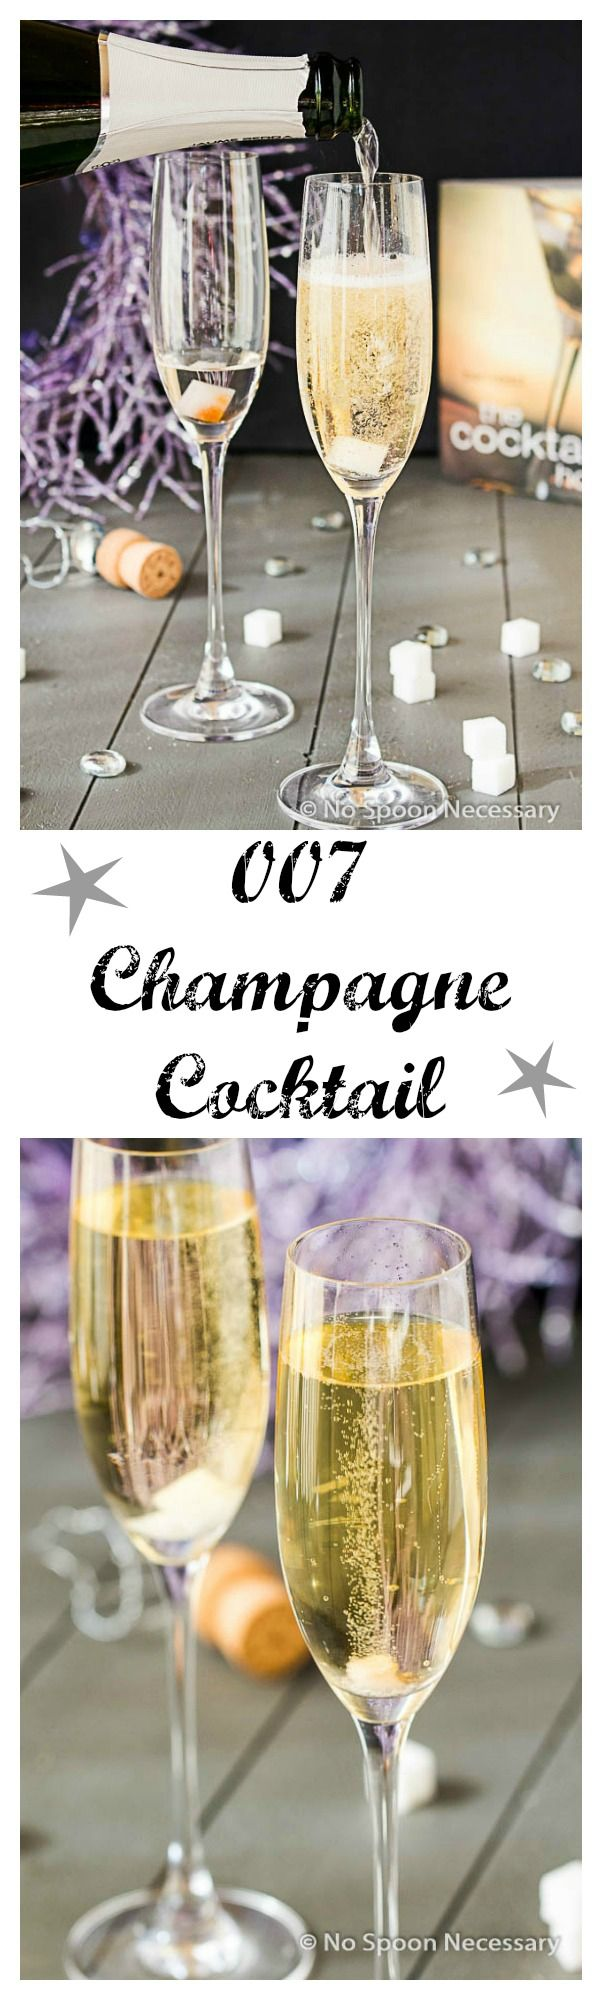 007 james bond champagne cocktail recipe it is cheer for Cocktail 007 bond